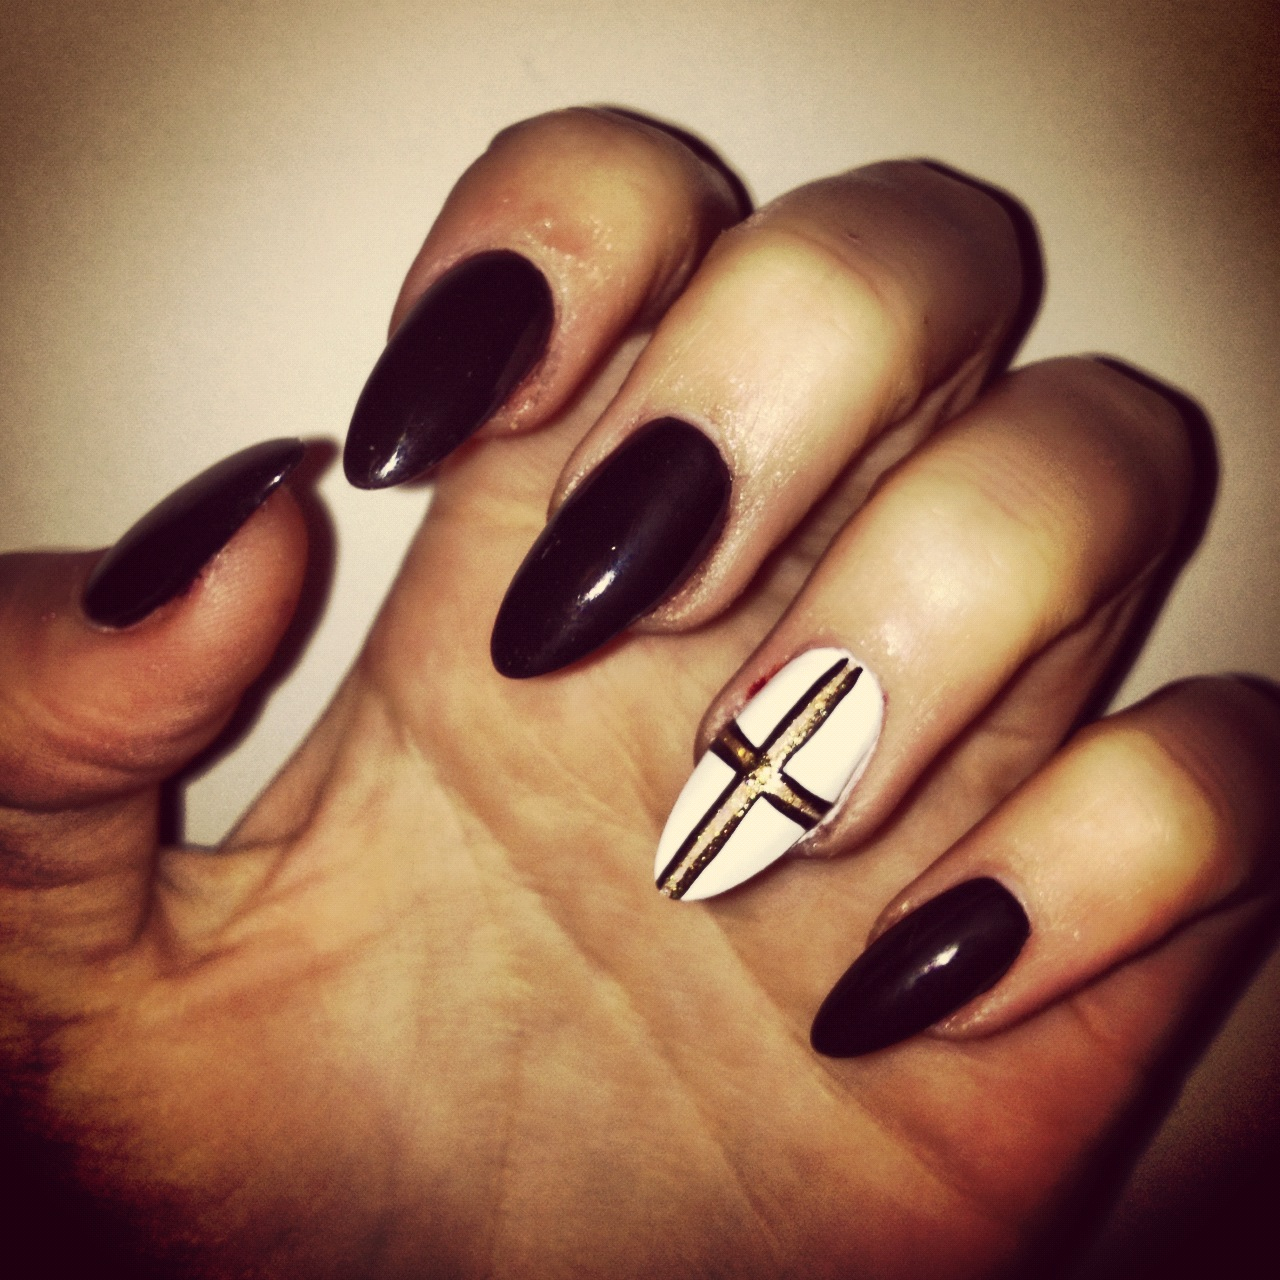 Black Pointy Nails Tumblr | www.imgkid.com - The Image Kid ...